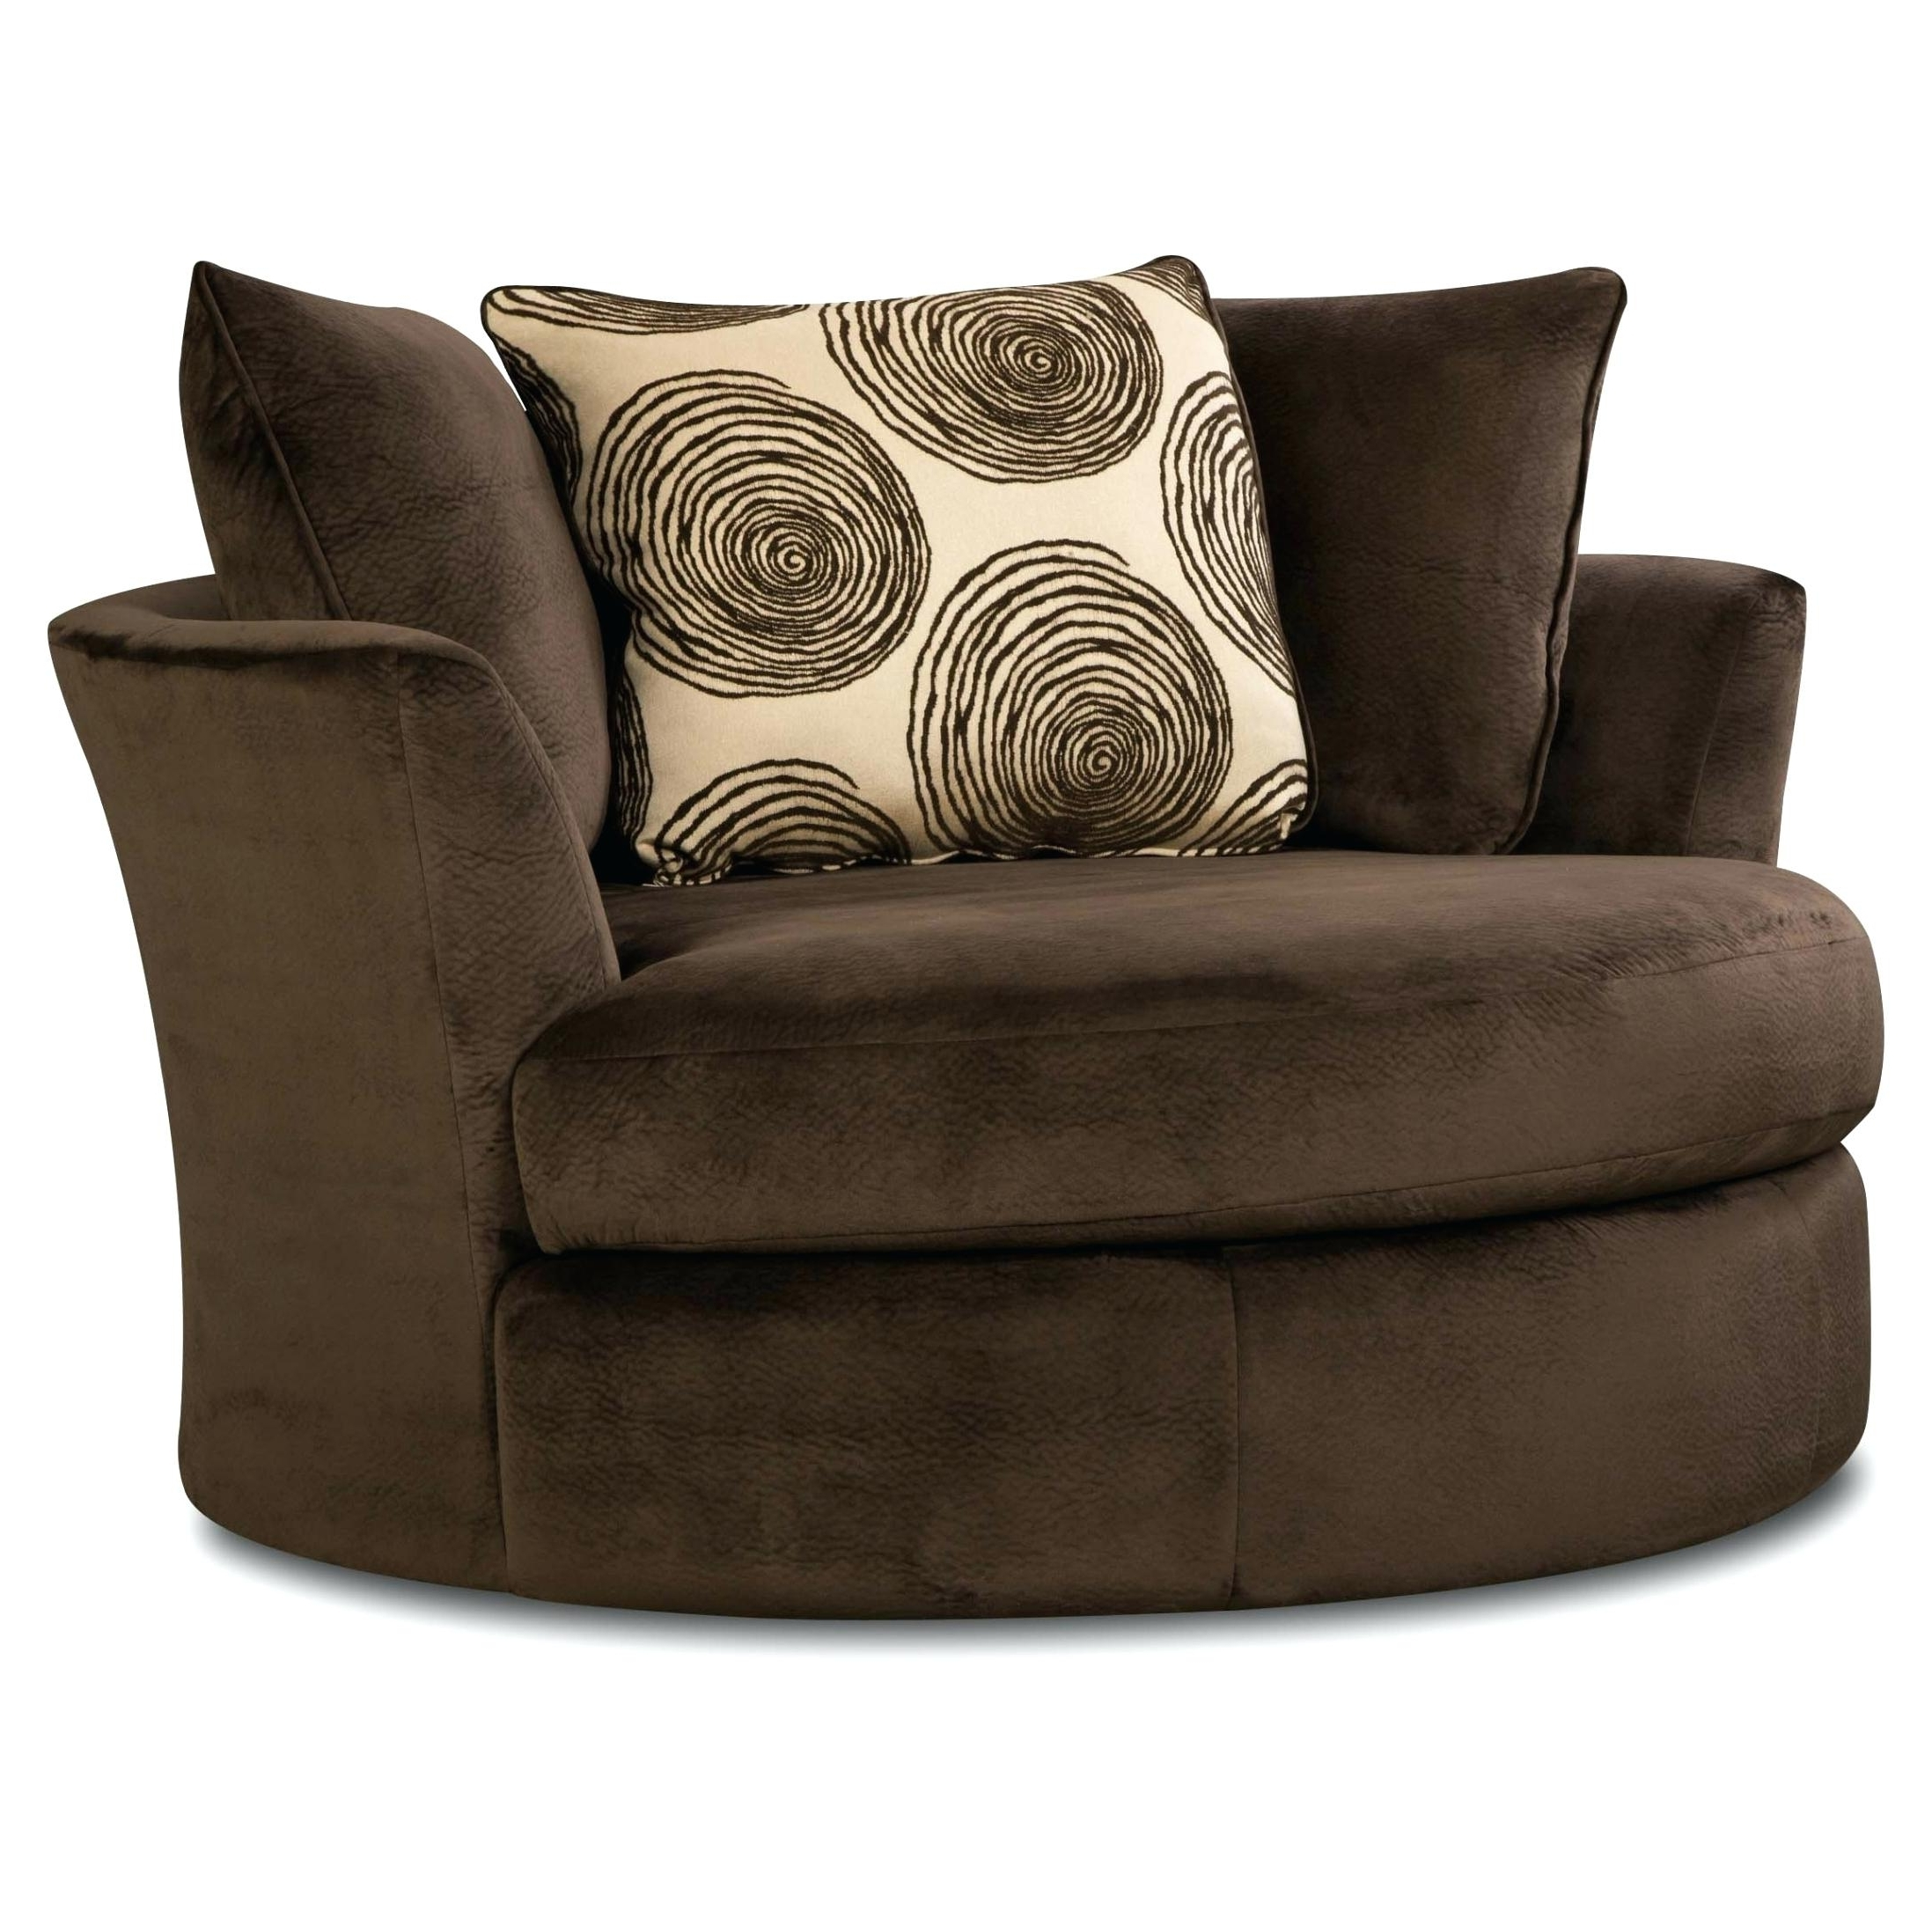 Accent Sofa Chairs Intended For Famous Furniture Elegant Brown Leather Sofarachlinith Accent Chair (View 17 of 20)